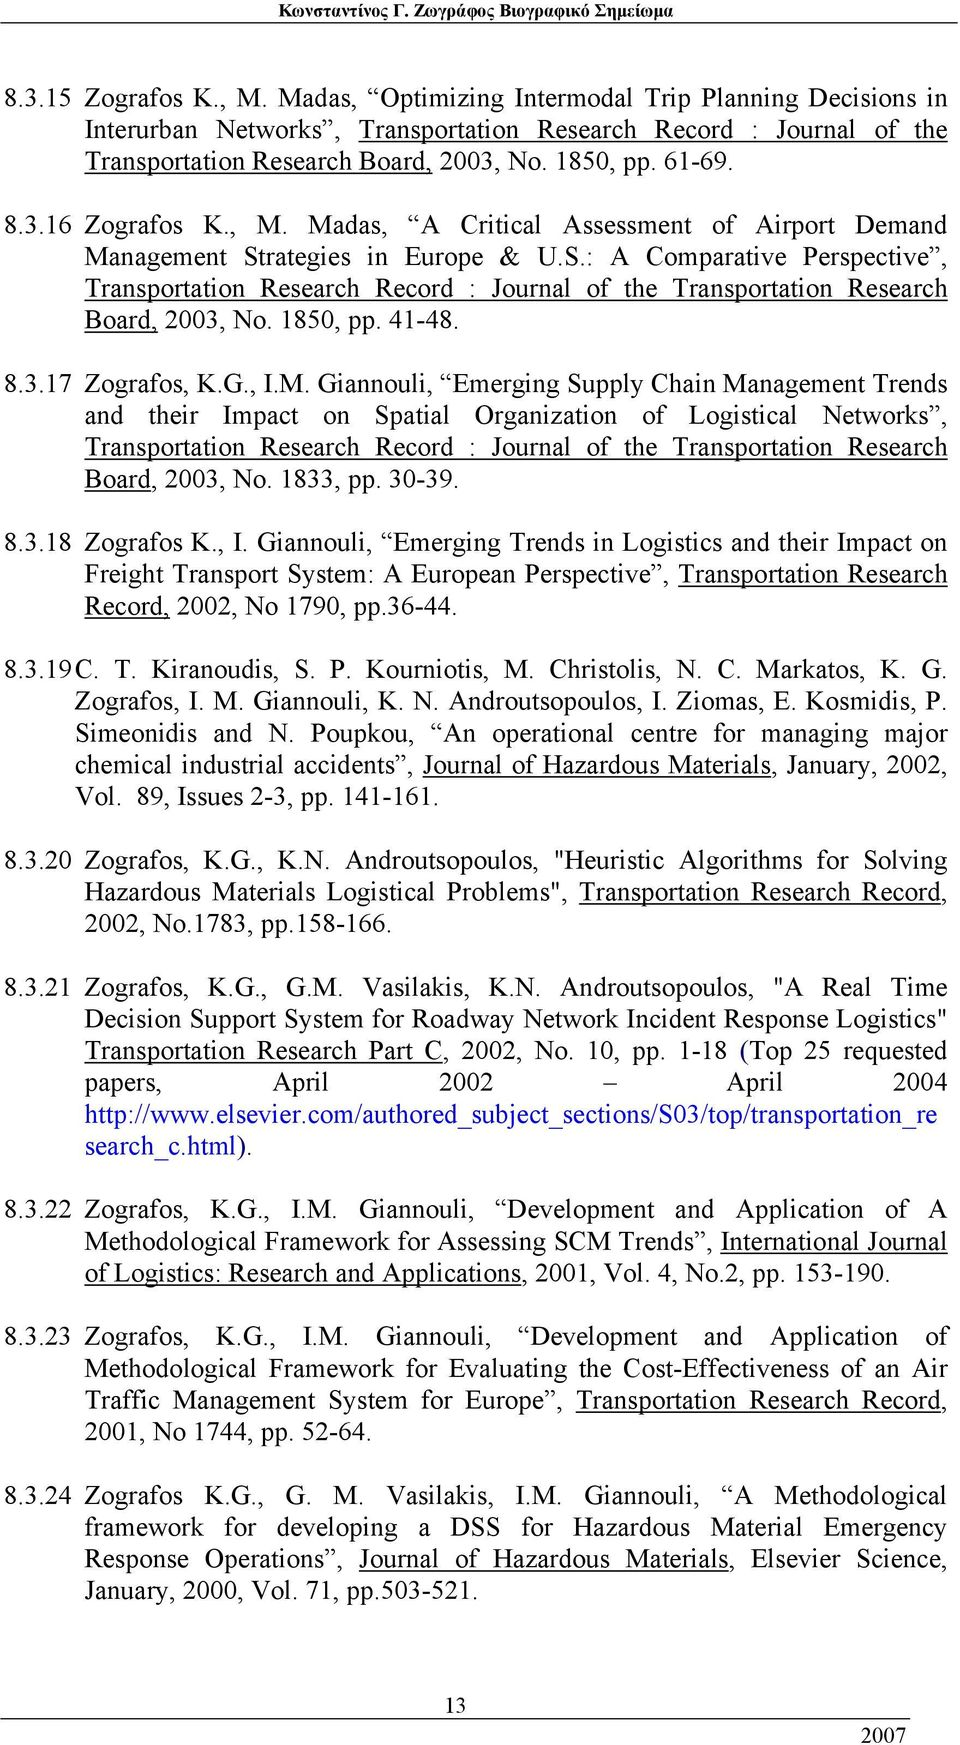 rategies in Europe & U.S.: A Comparative Perspective, Transportation Research Record : Journal of the Transportation Research Board, 2003, No. 1850, pp. 41-48. 8.3.17 Zografos, K.G., I.M.